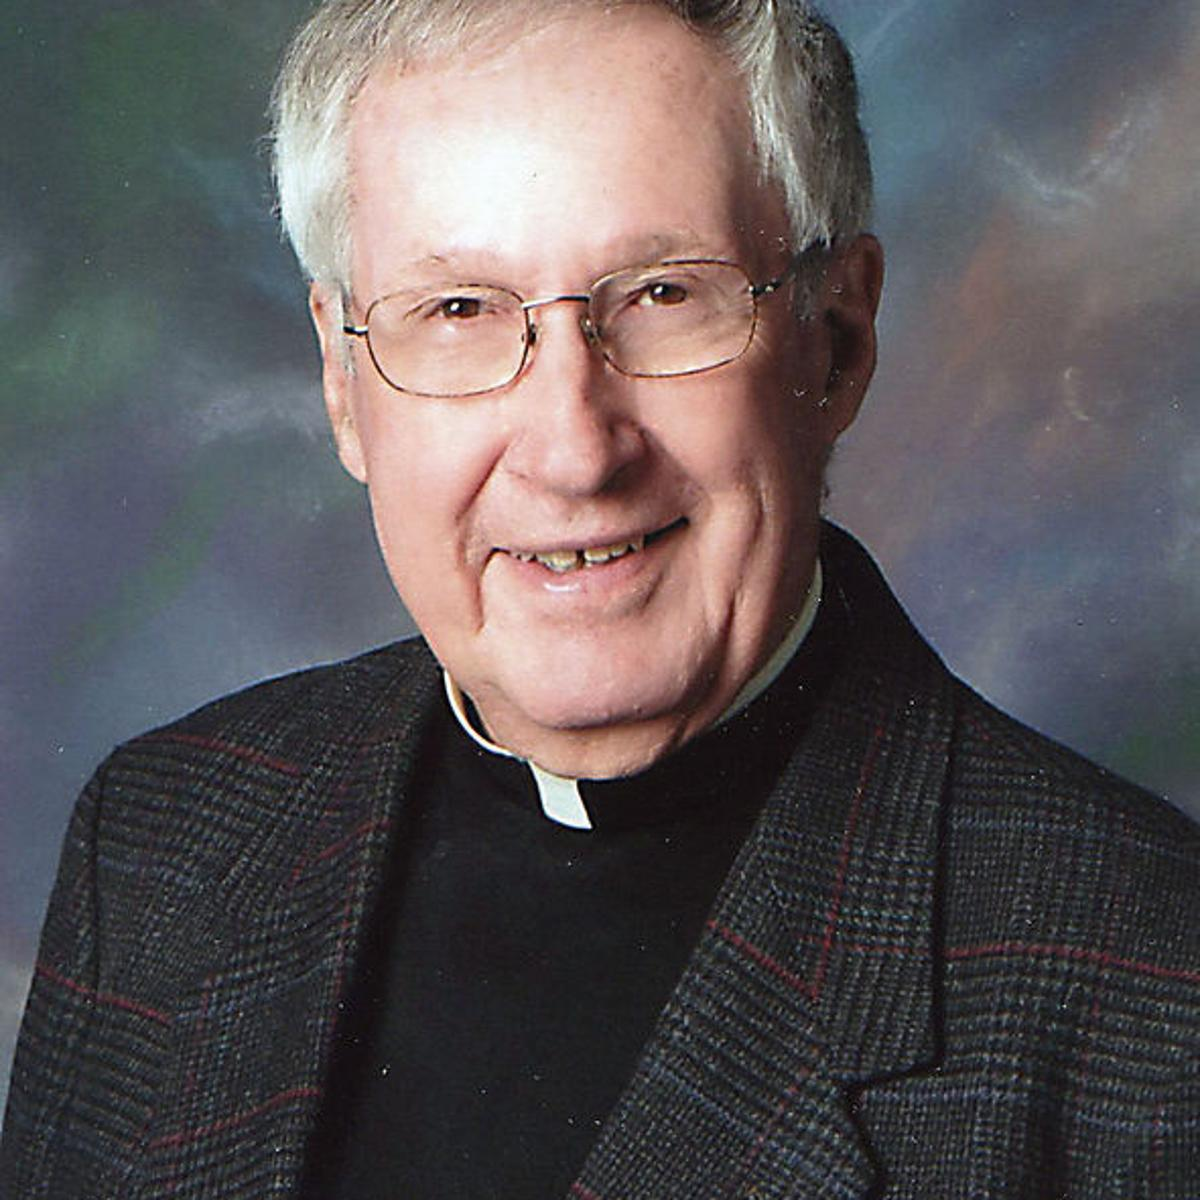 Retired Iowa priest charged with five counts of invasion of